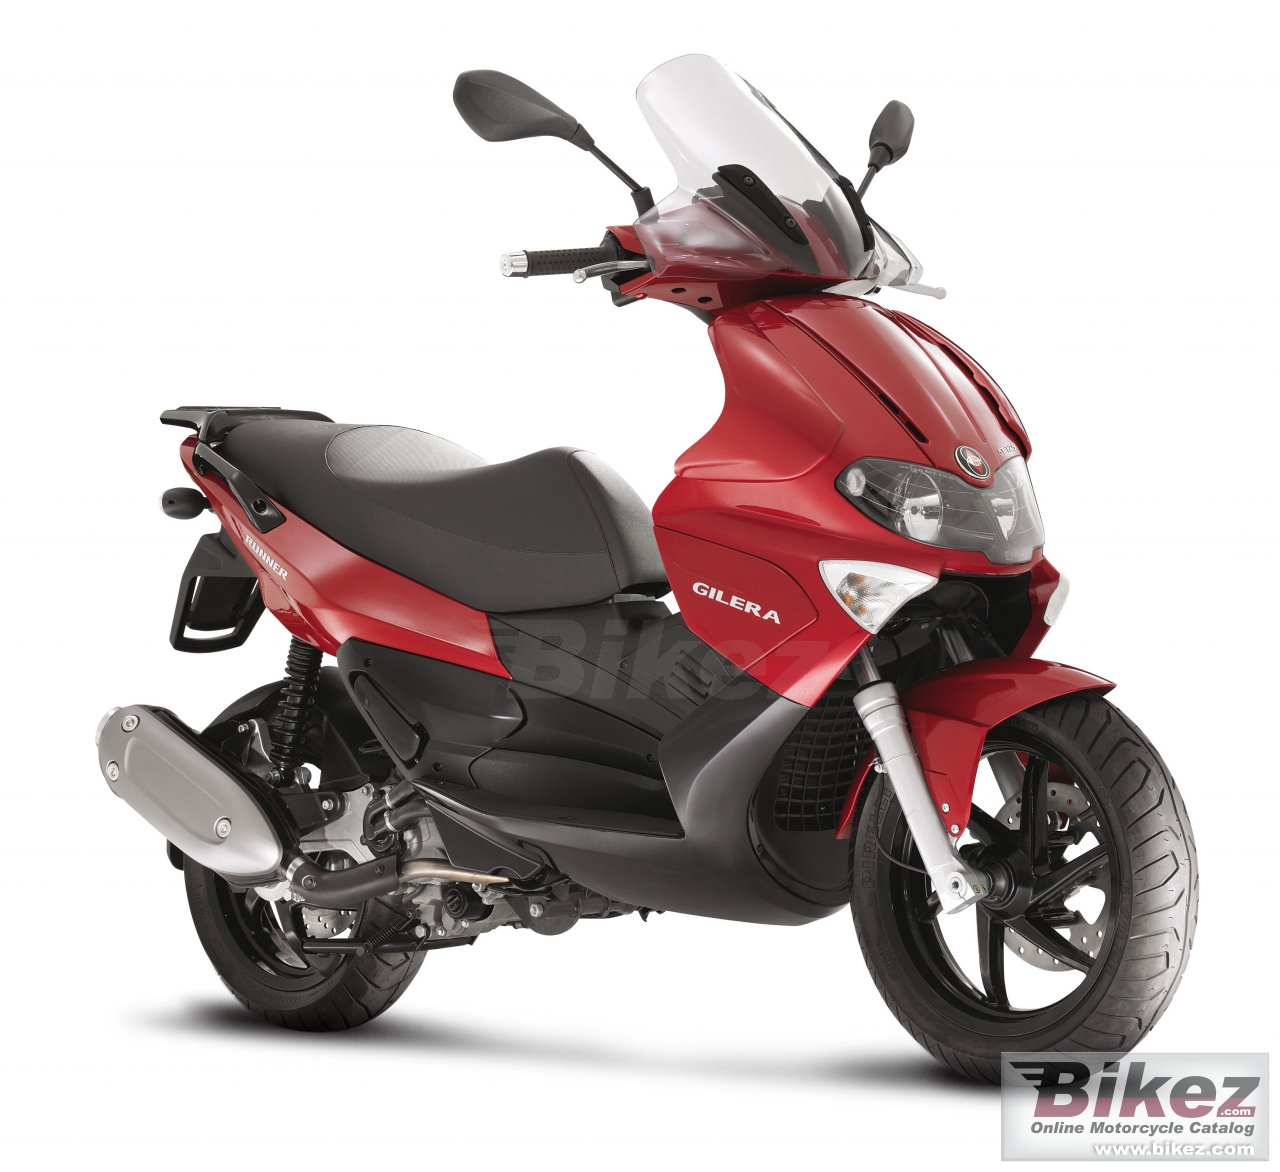 Big Gilera runner st 125 picture and wallpaper from Bikez.com